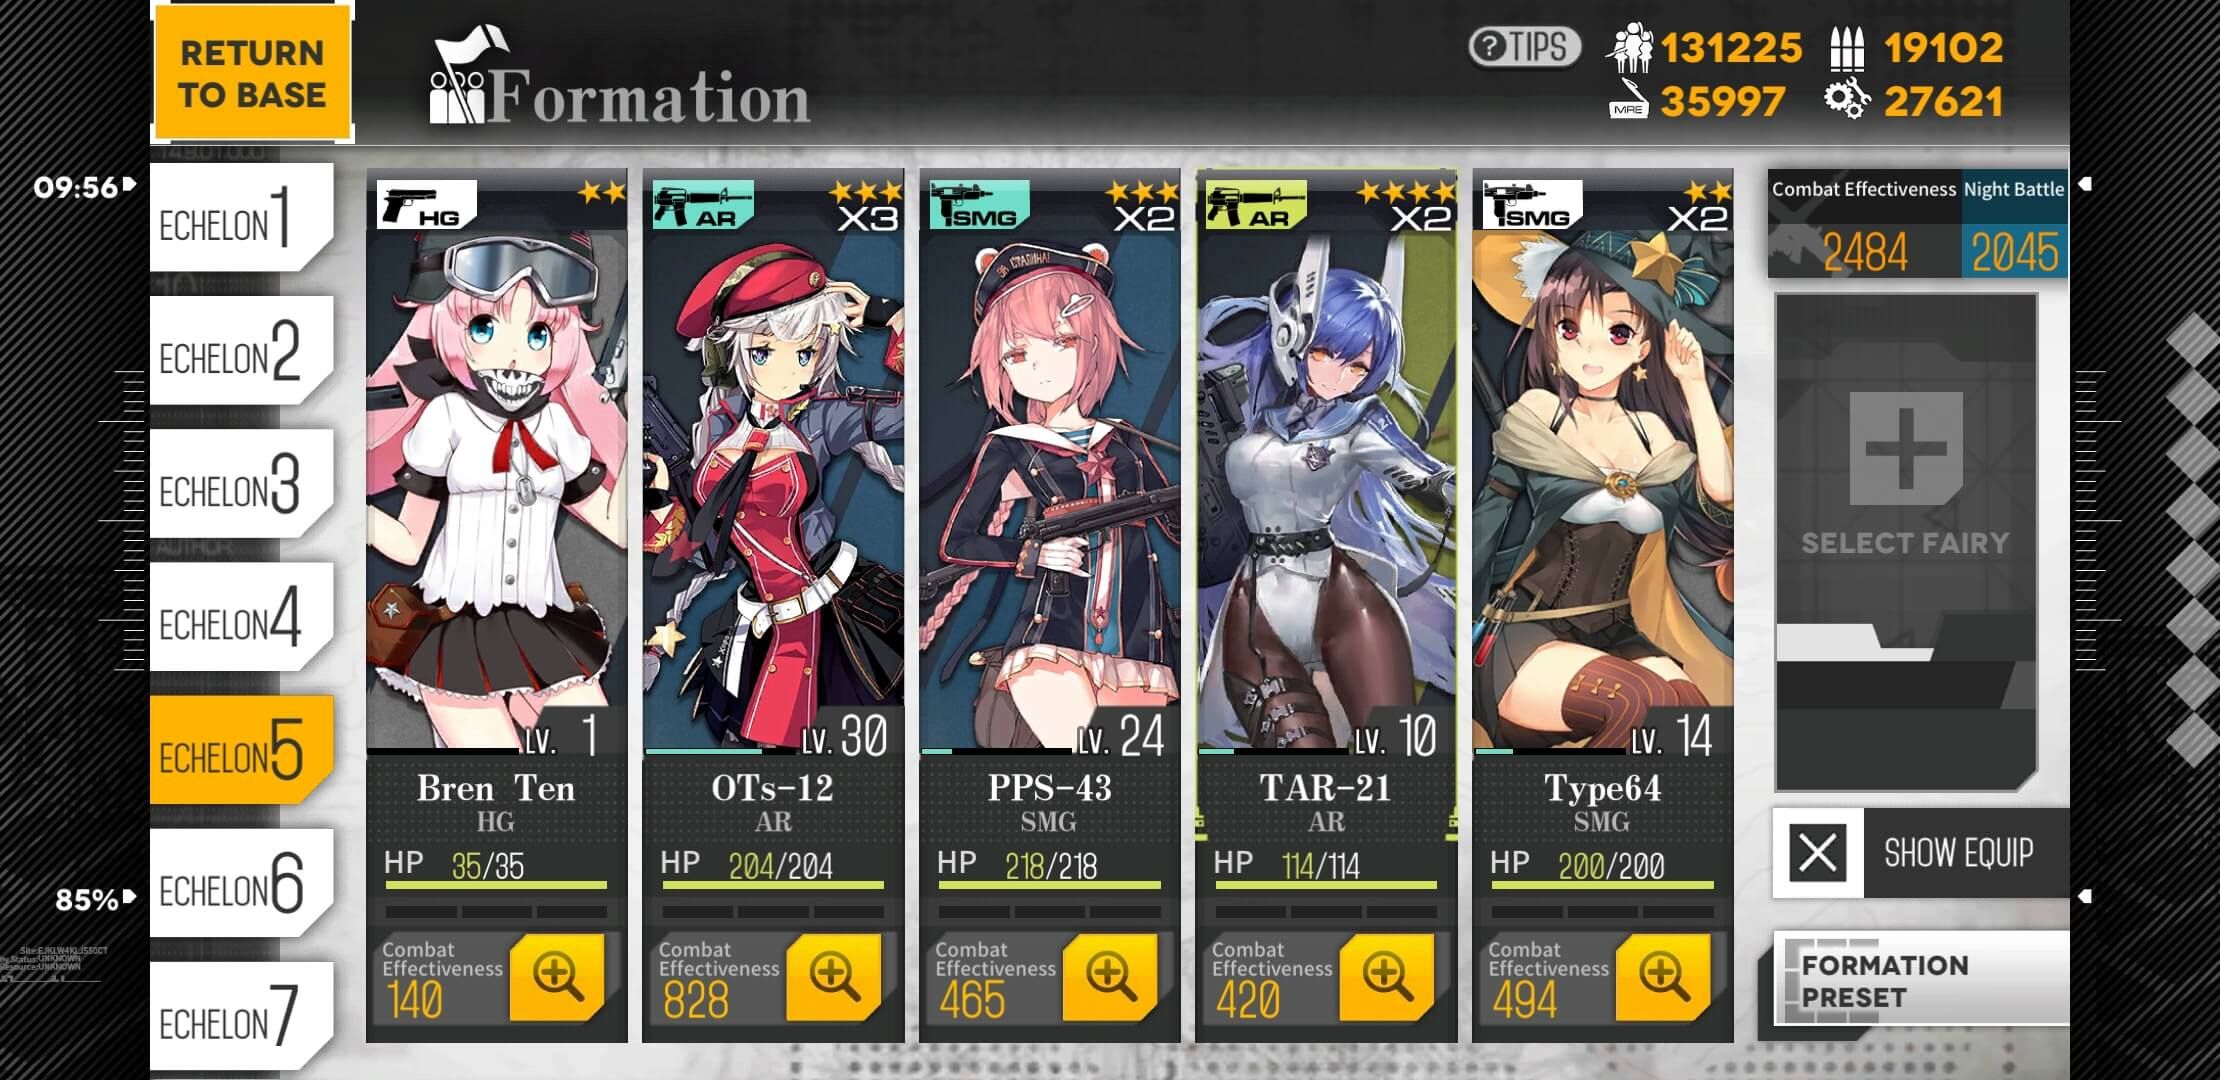 Girls Frontline Starting Out Part 2 Girls Frontline Wiki Gamepress 少女前线, shaonü qianxian) is a chinese smartphone game developed by mica team. girls frontline wiki